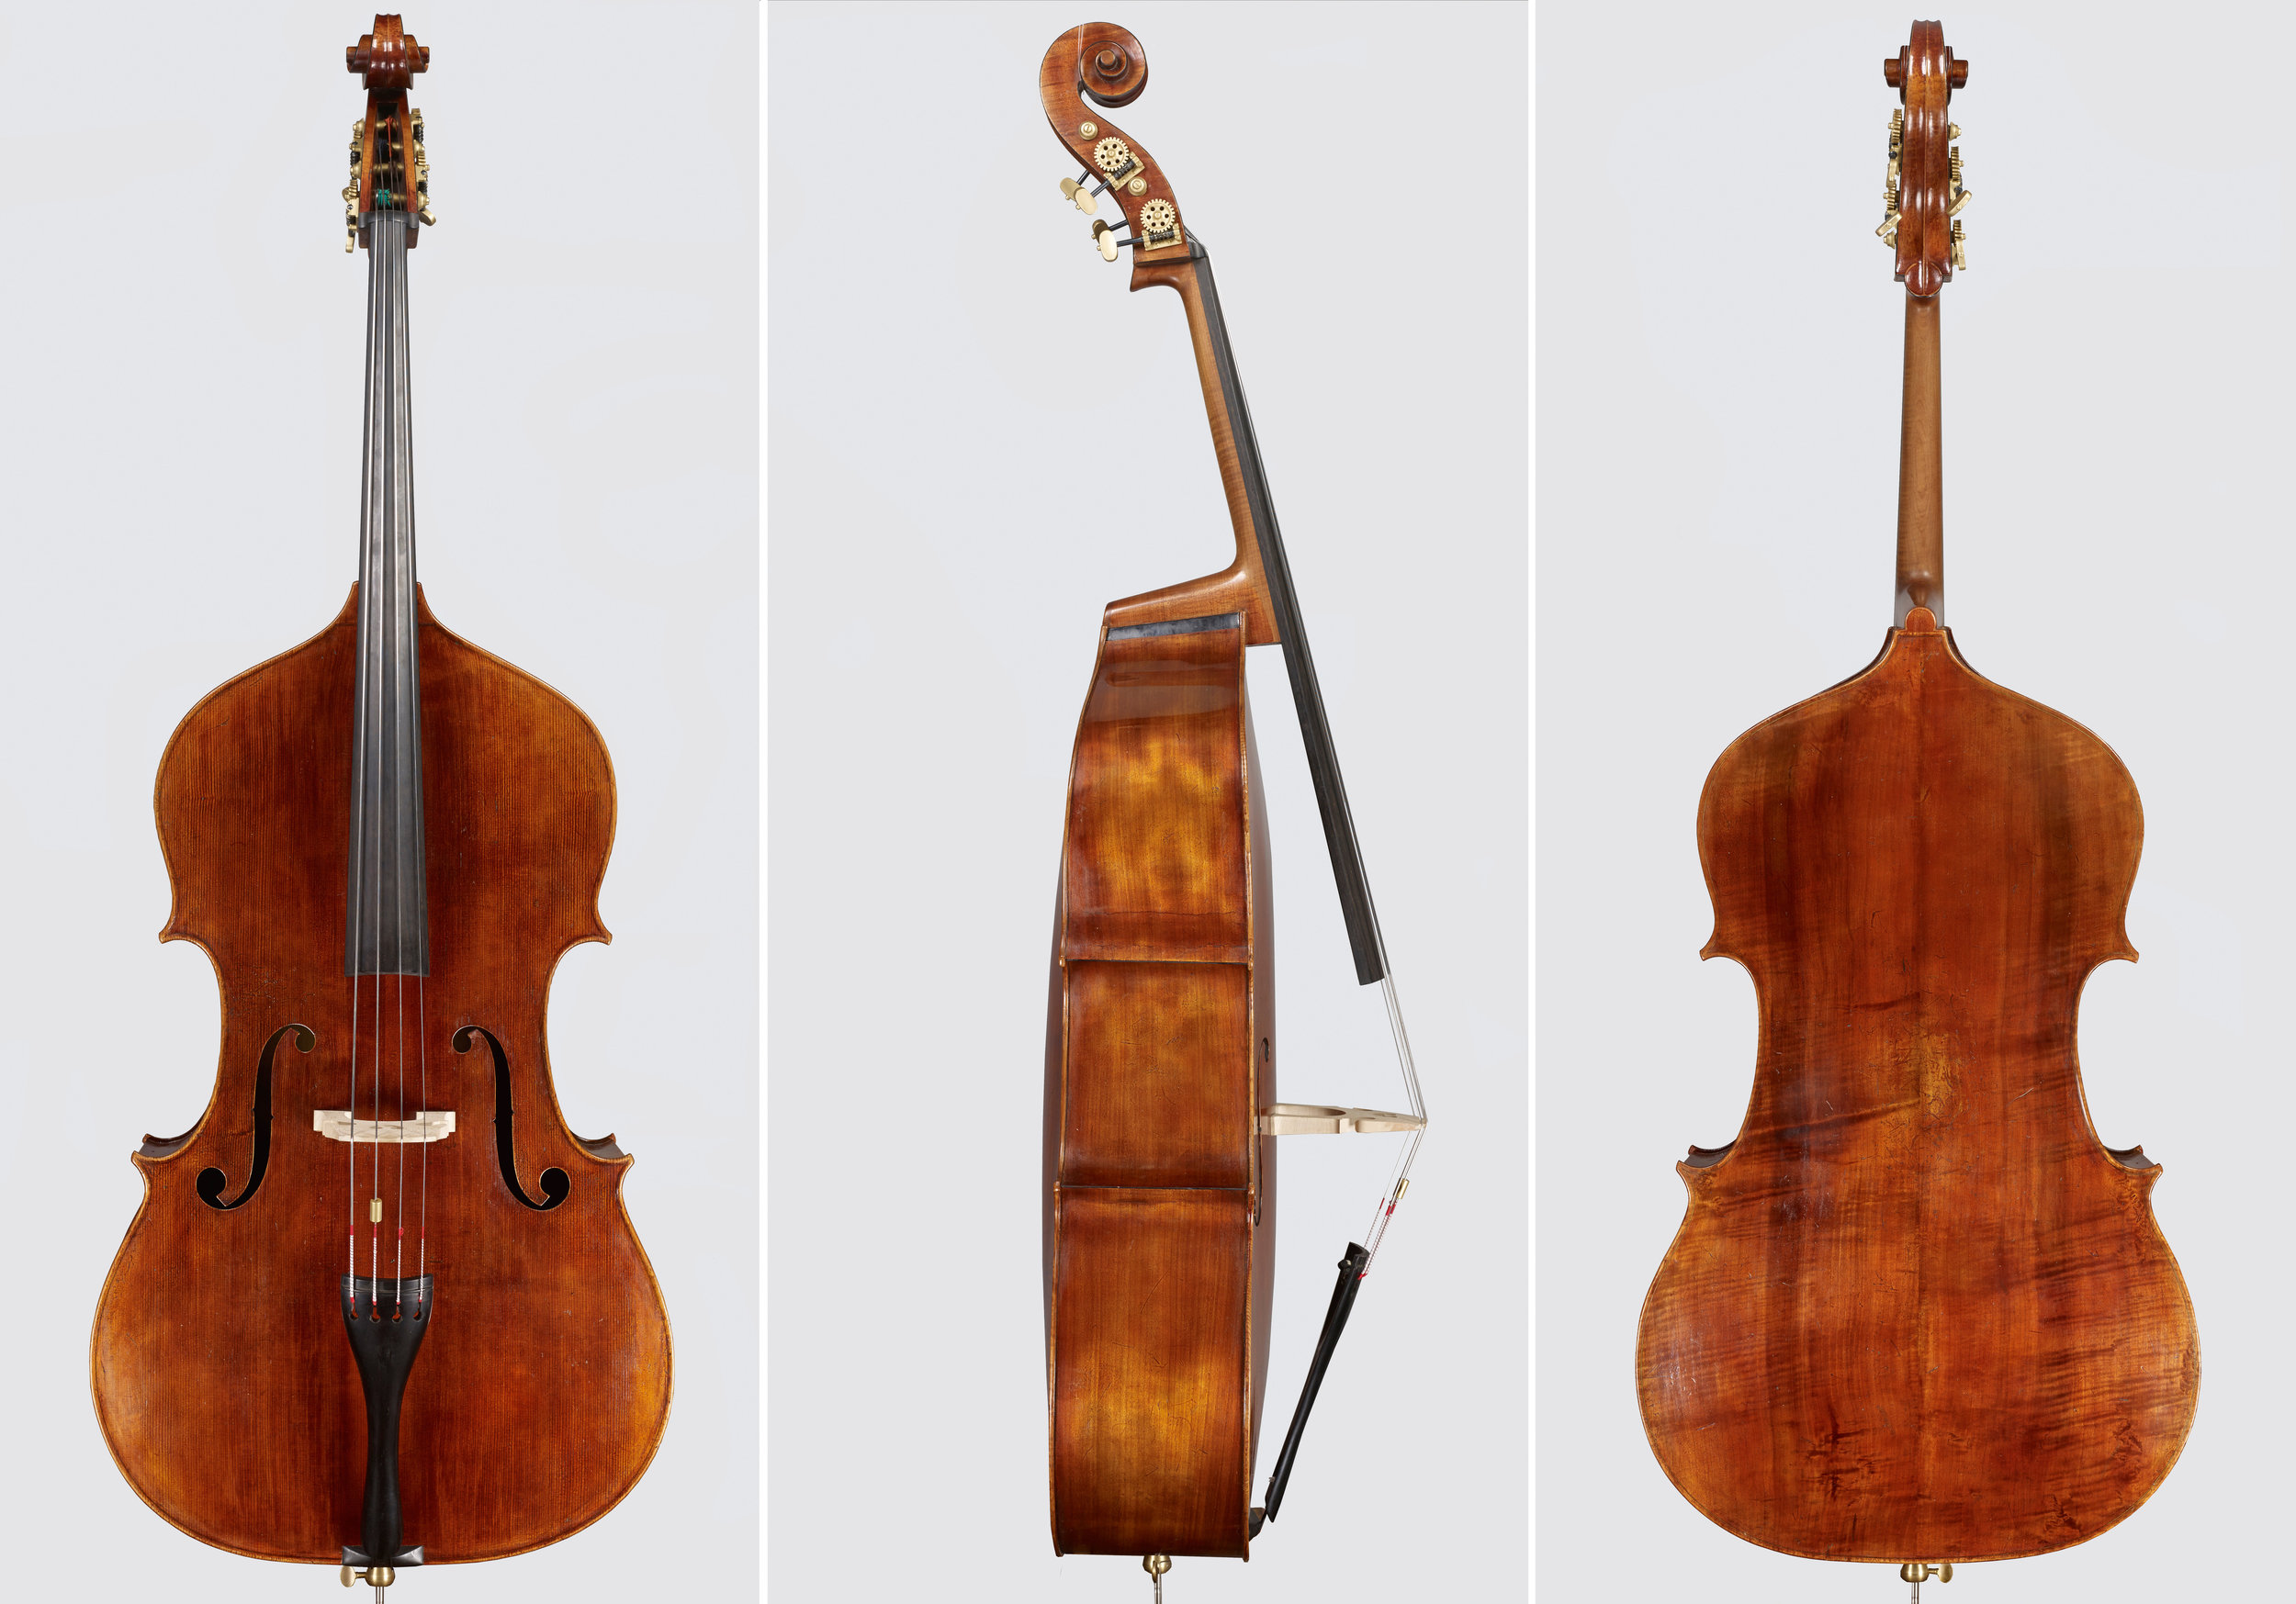 Amati-inspired Bass made with the artistic direction of Scott Pingel